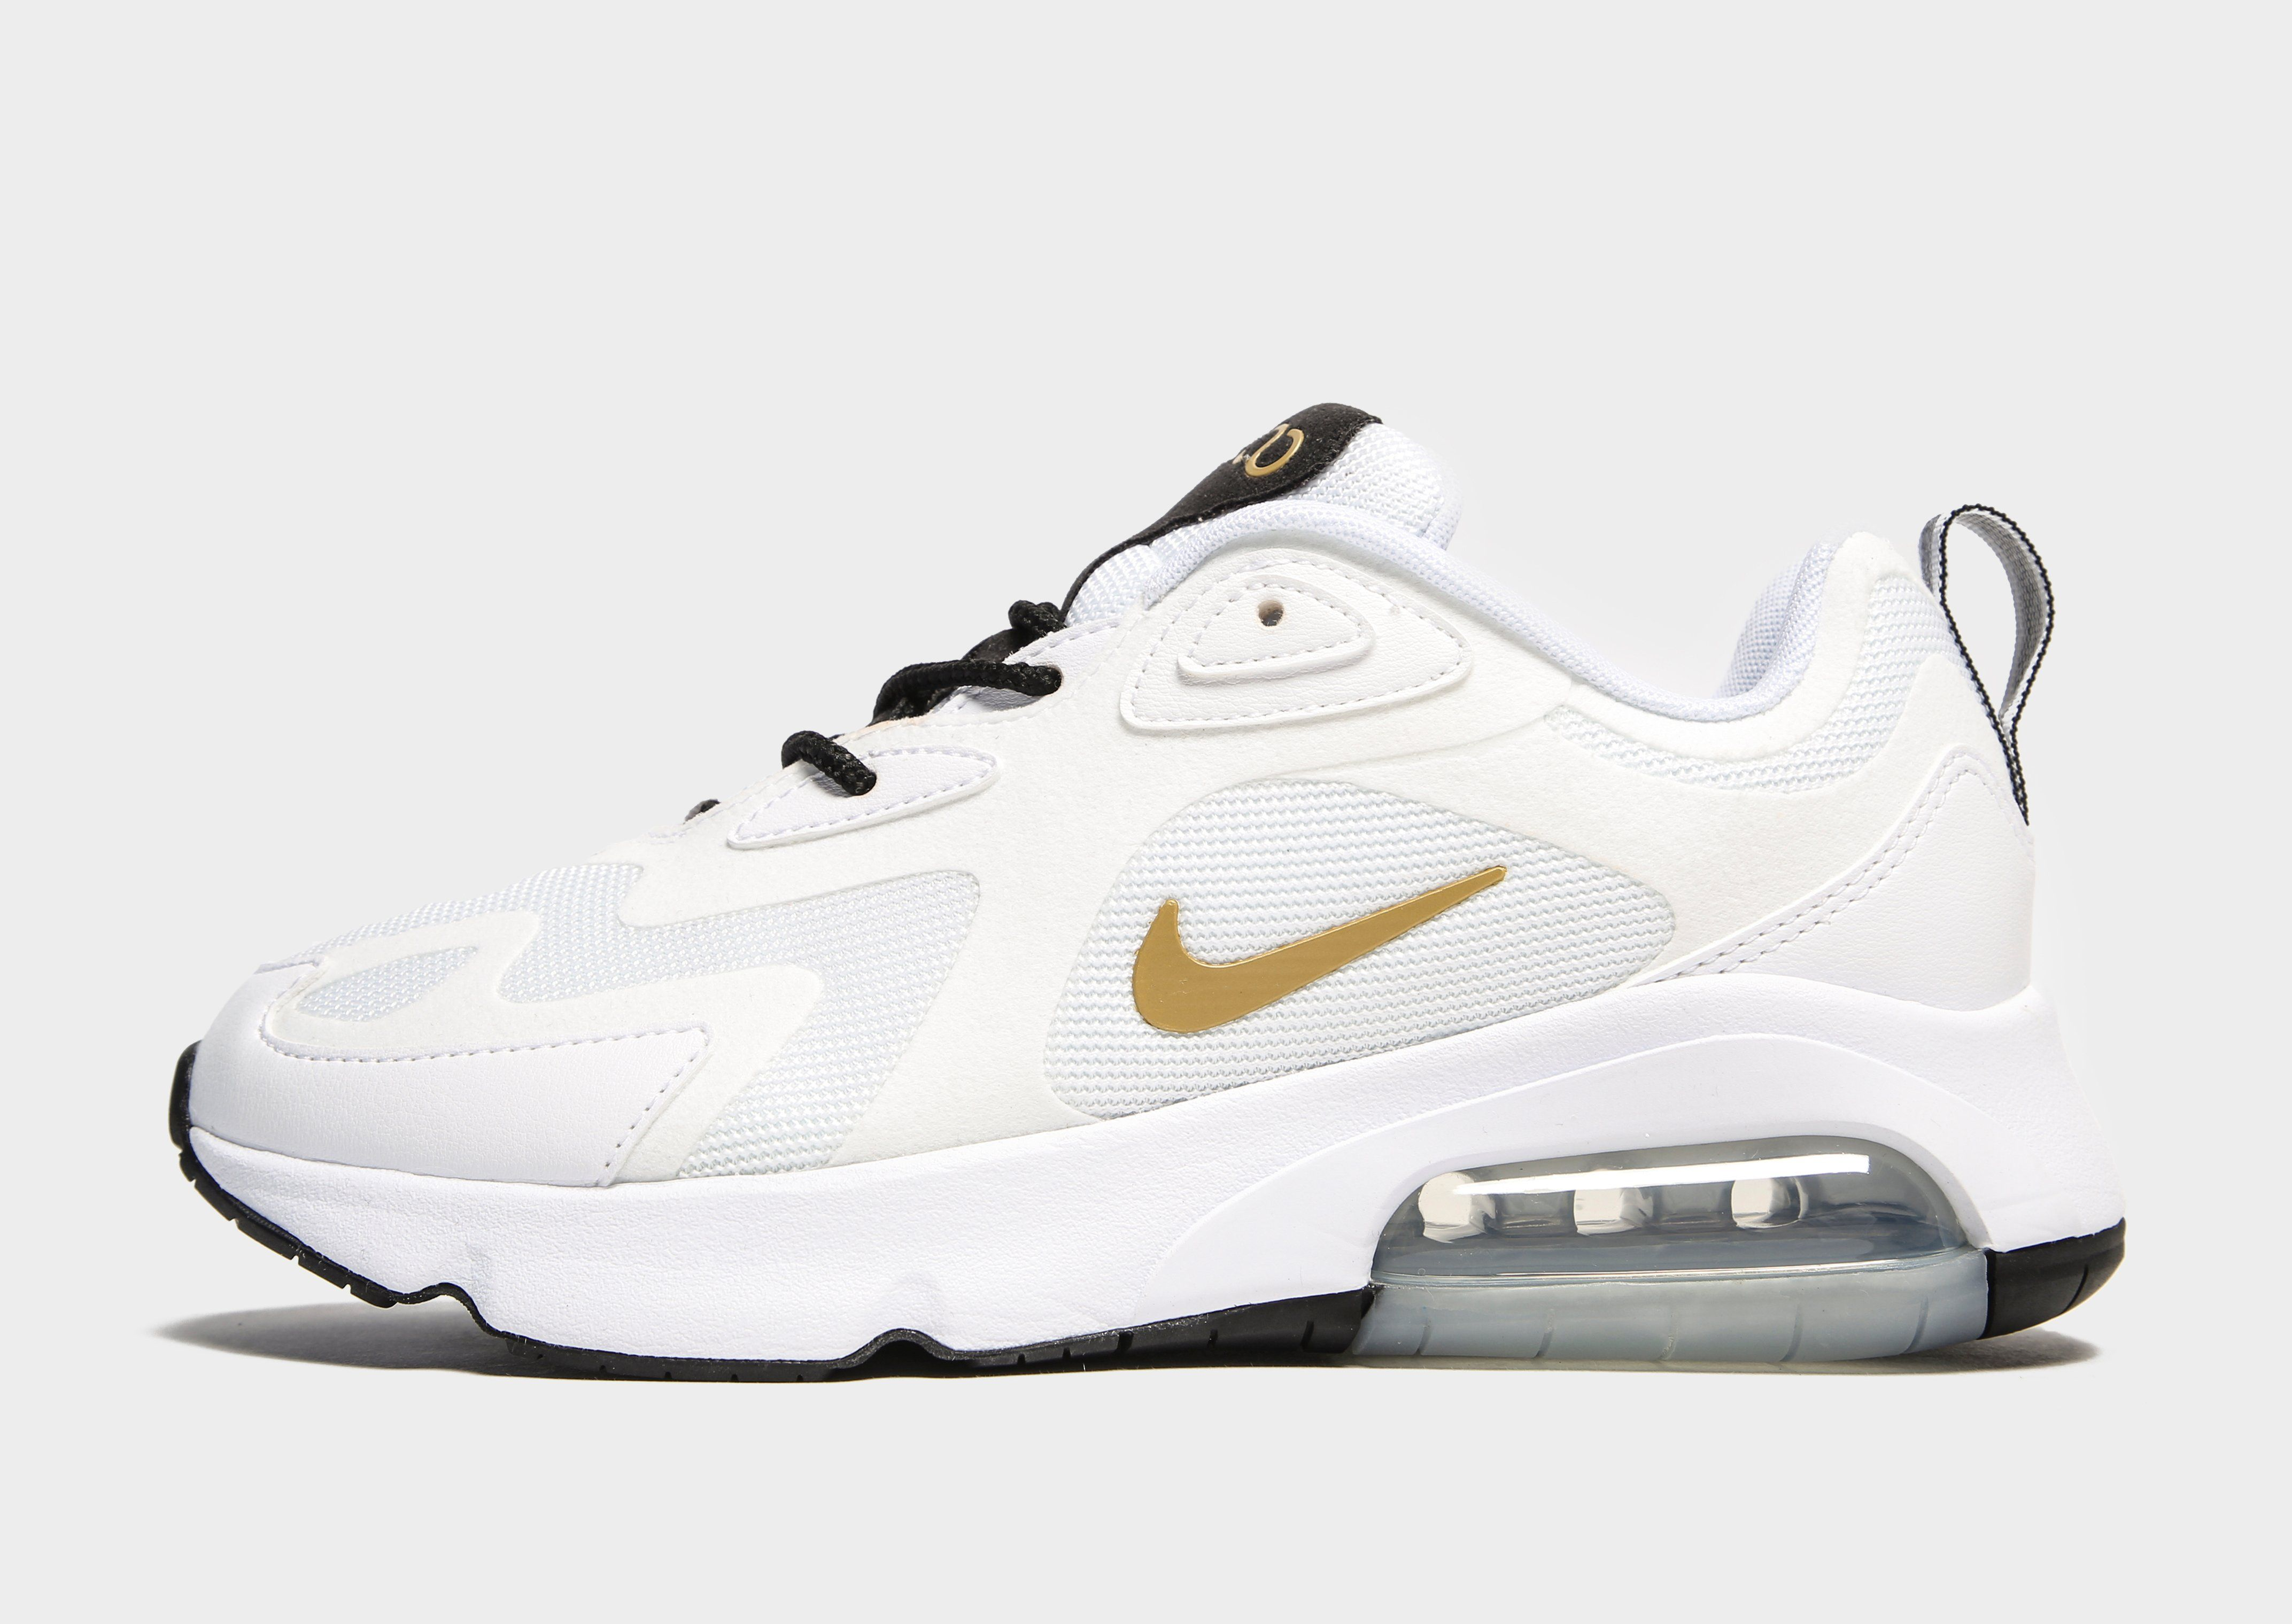 Opiniones Nike Air Max 1 Essential Only at JD, Blanco